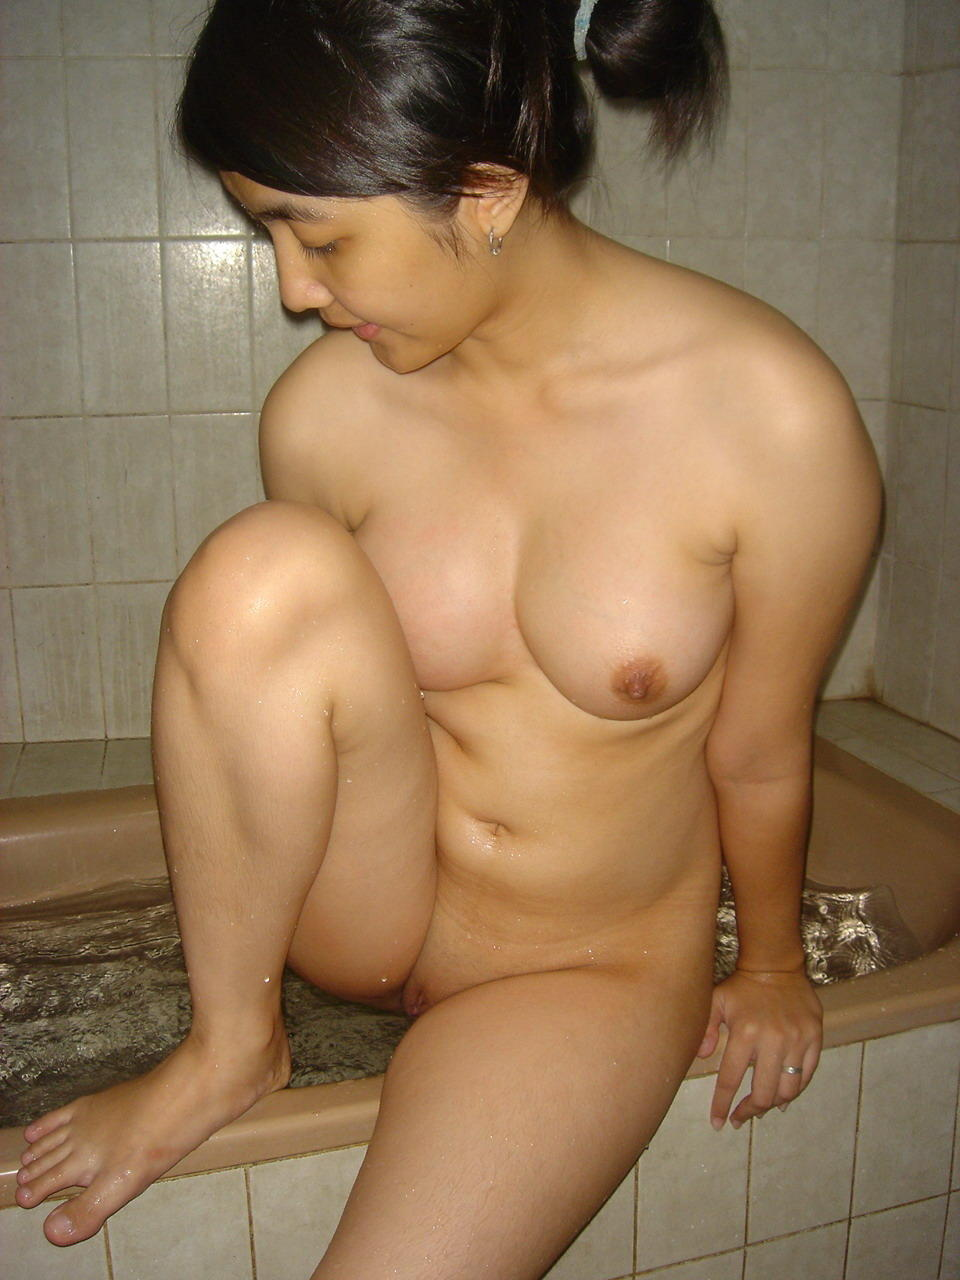 Blow free interracial job pic